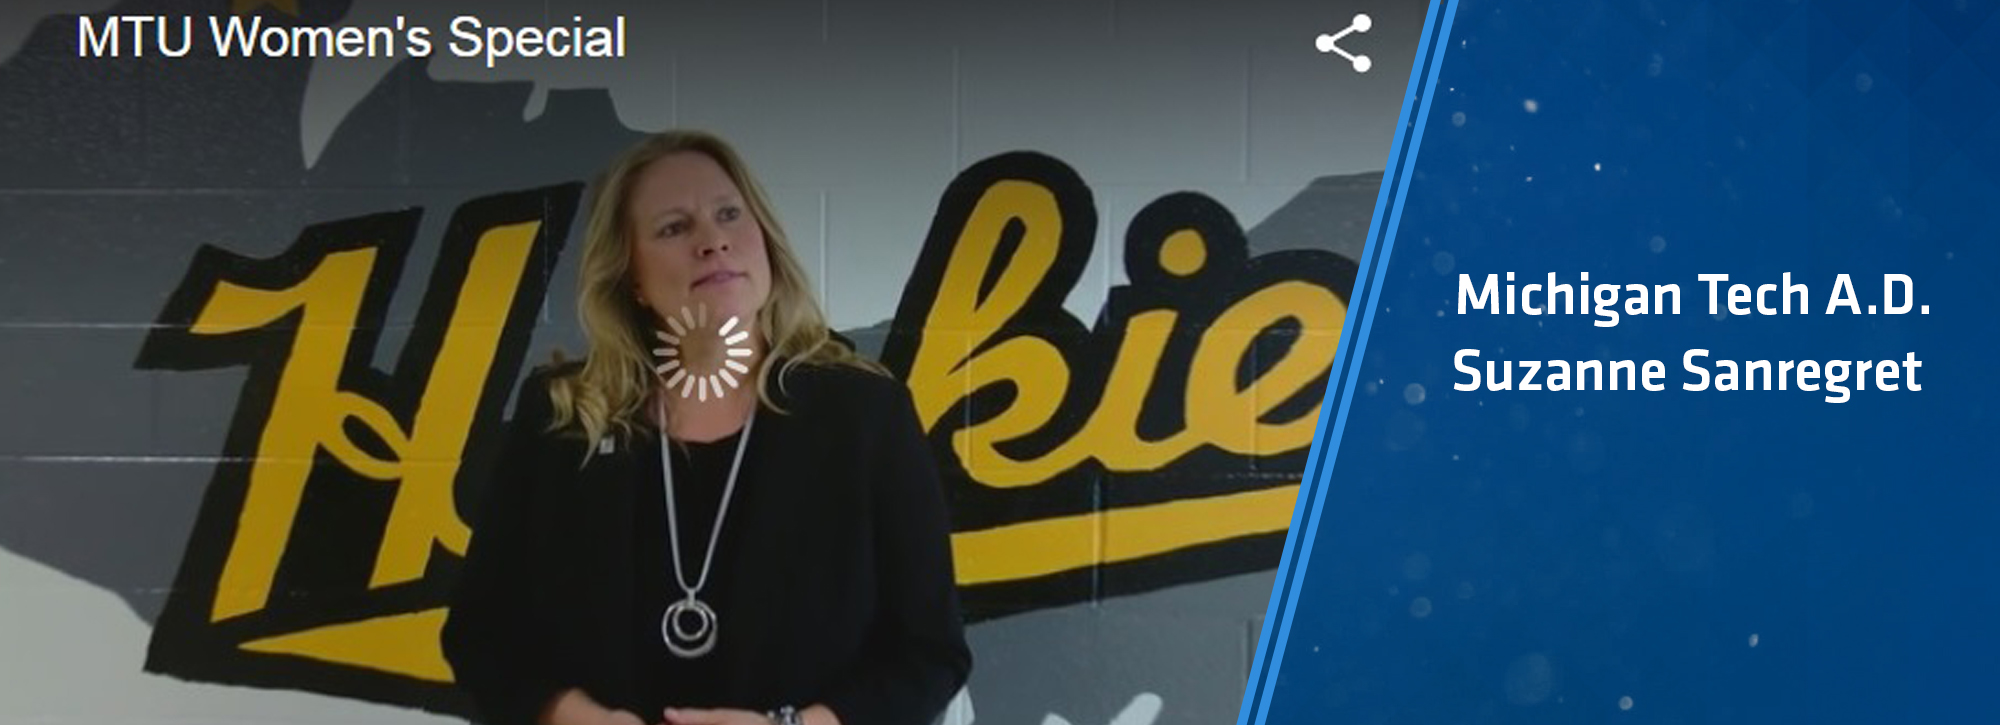 Local 3 News features MTU Director of Athletics Suzanne Sanregret